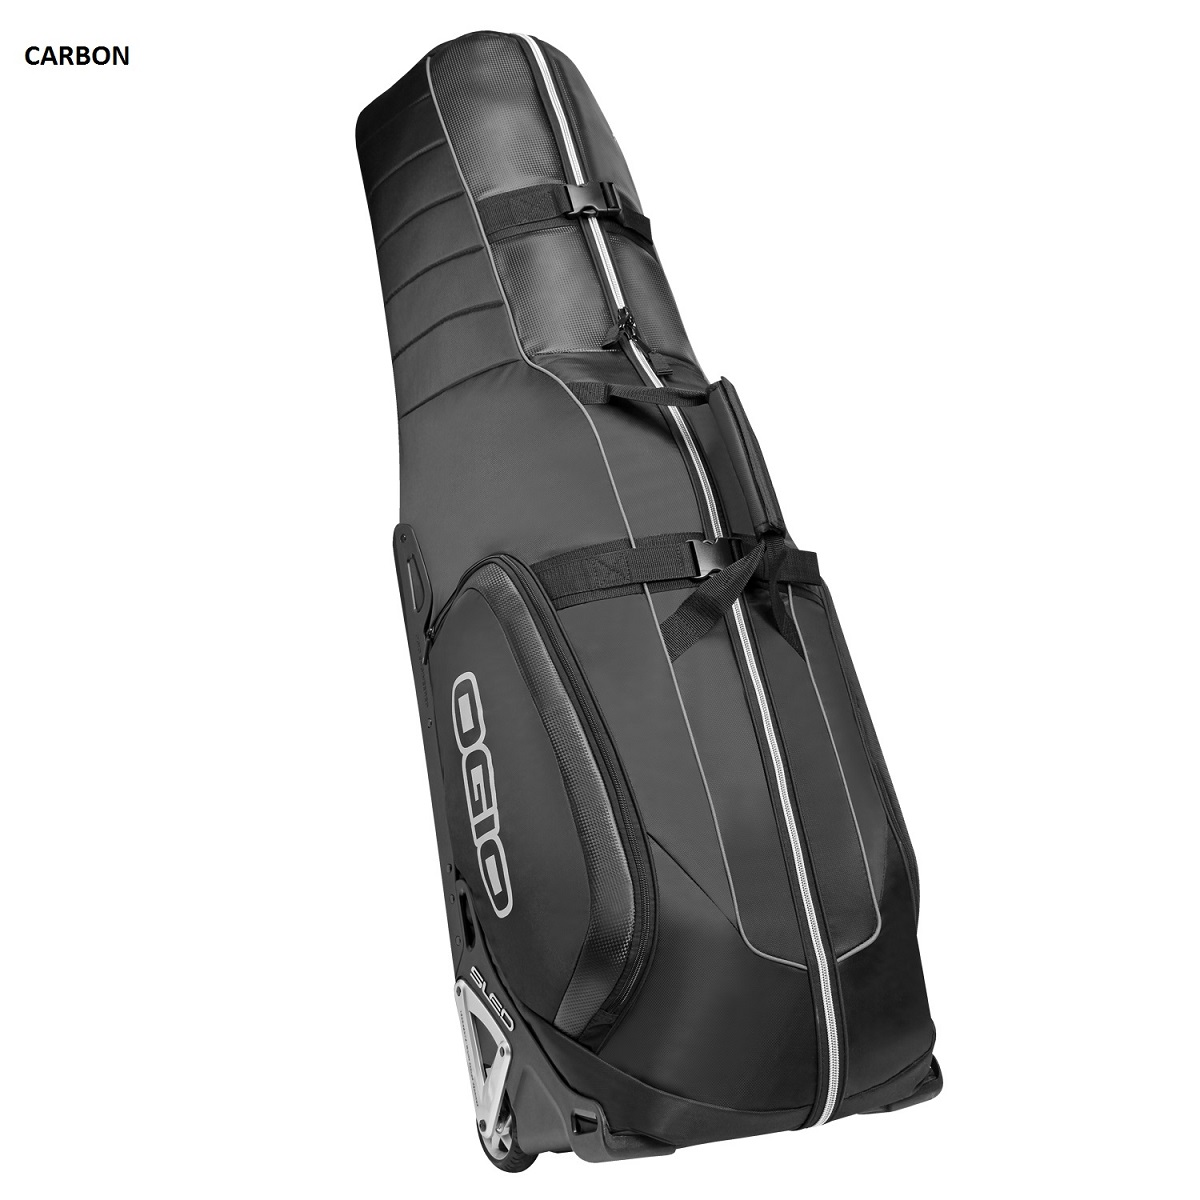 977509 as well Rxv Golf Cart furthermore Images likewise Video Final Major Staff Bags Headcover Revealed also Car Paint Covers. on golf cart bag cover